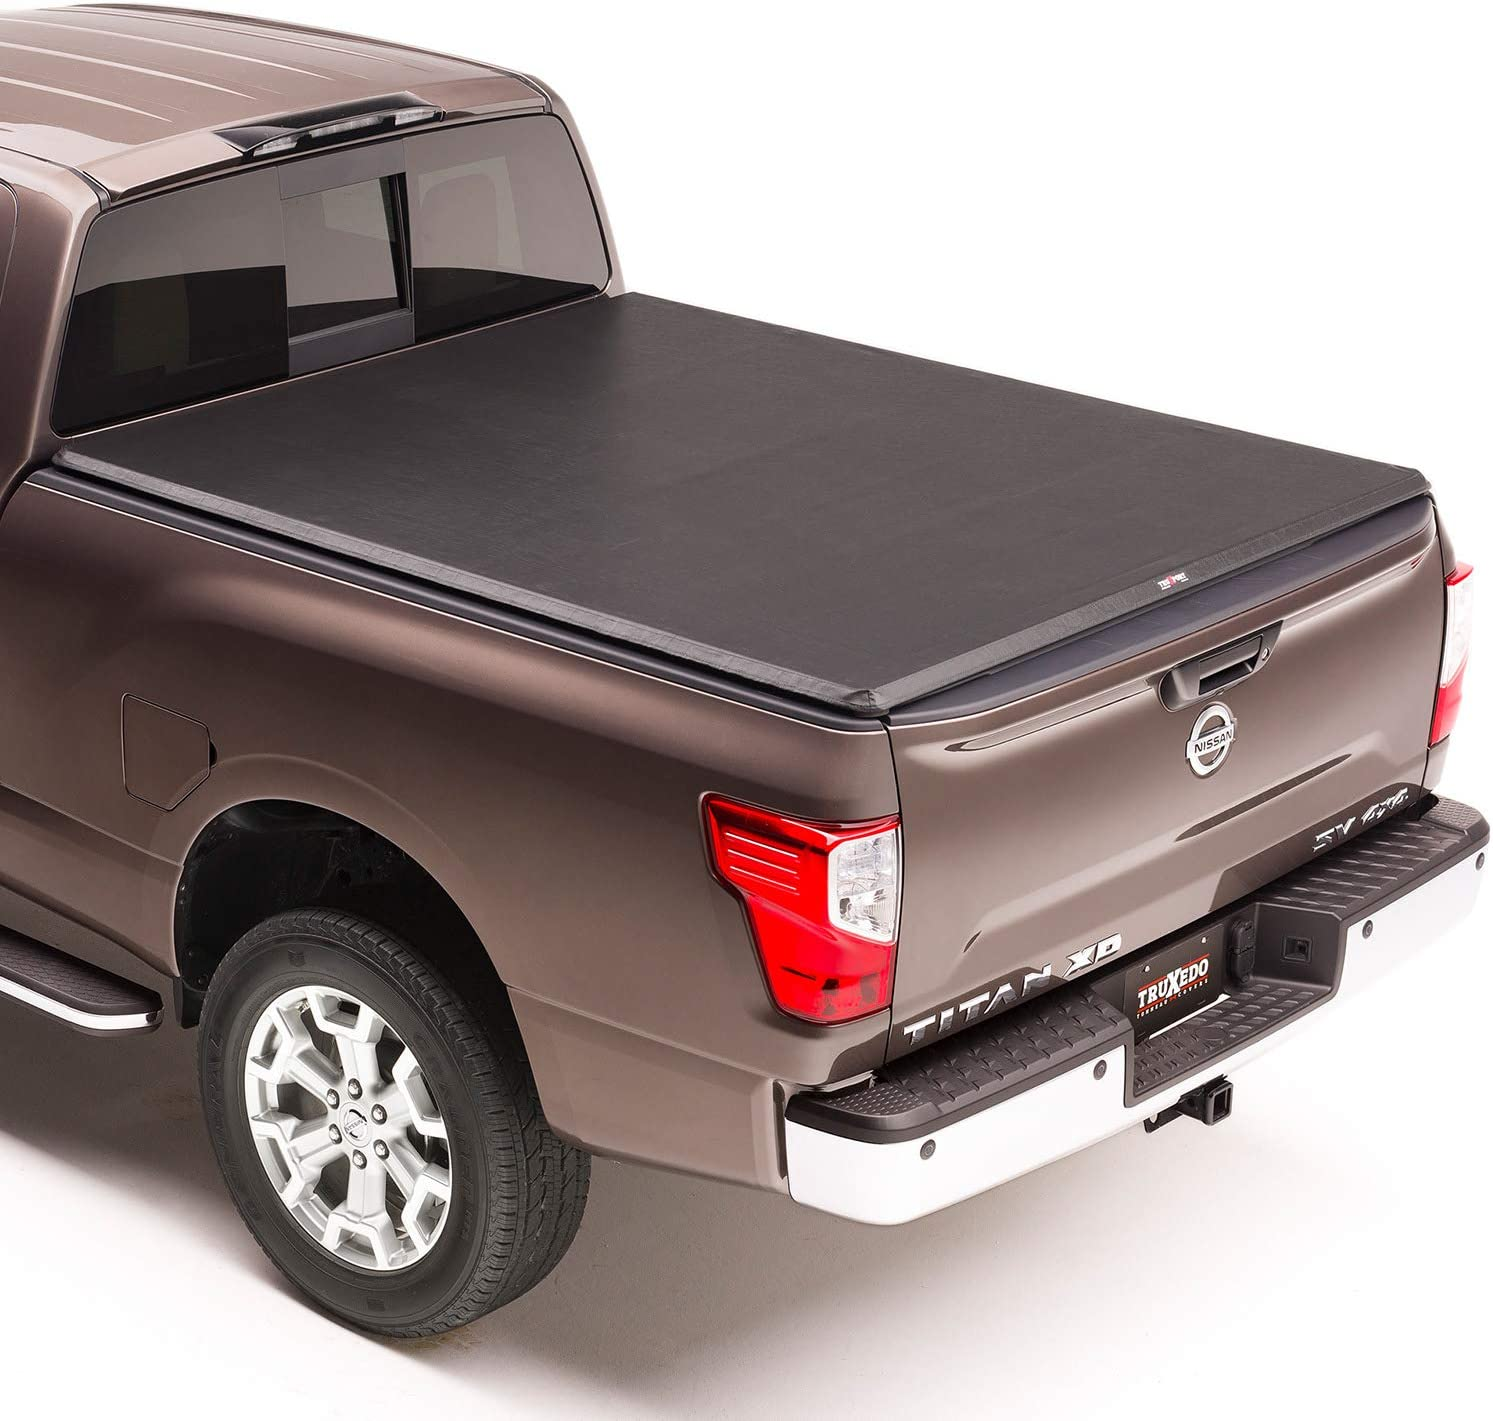 TruXedo Super sale period limited TruXport Soft Roll Up Bed Tonneau 297301 Special Campaign Truck Cover